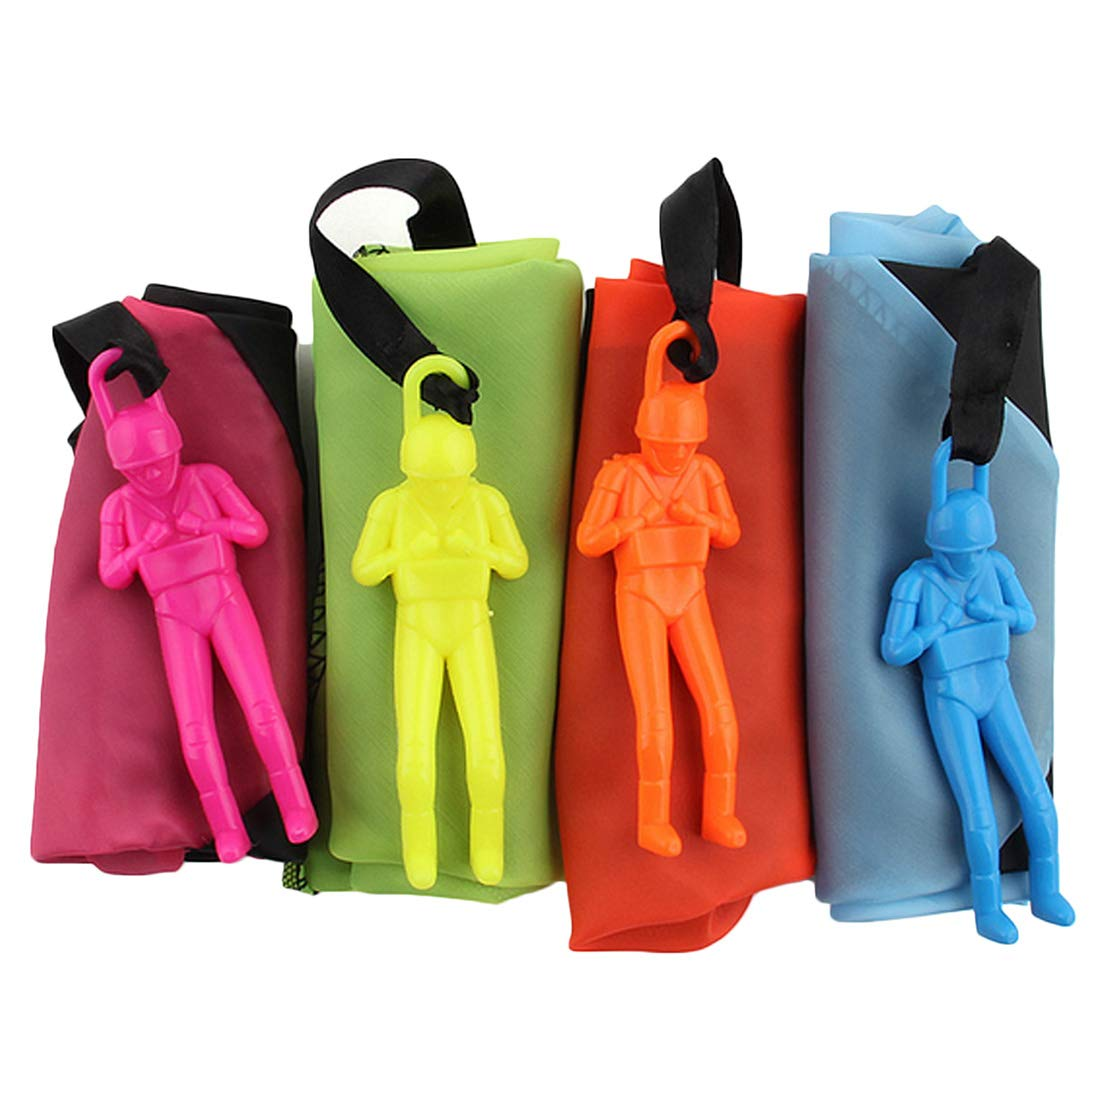 Huihui Decoration 7 Pieces Parachute Toys,Tangle Free Parachute Men Throwing Hand Throw Soldiers Toss It Up and Watching Landing Outdoor Parachute for Kids by Huihui Decoration (Image #4)